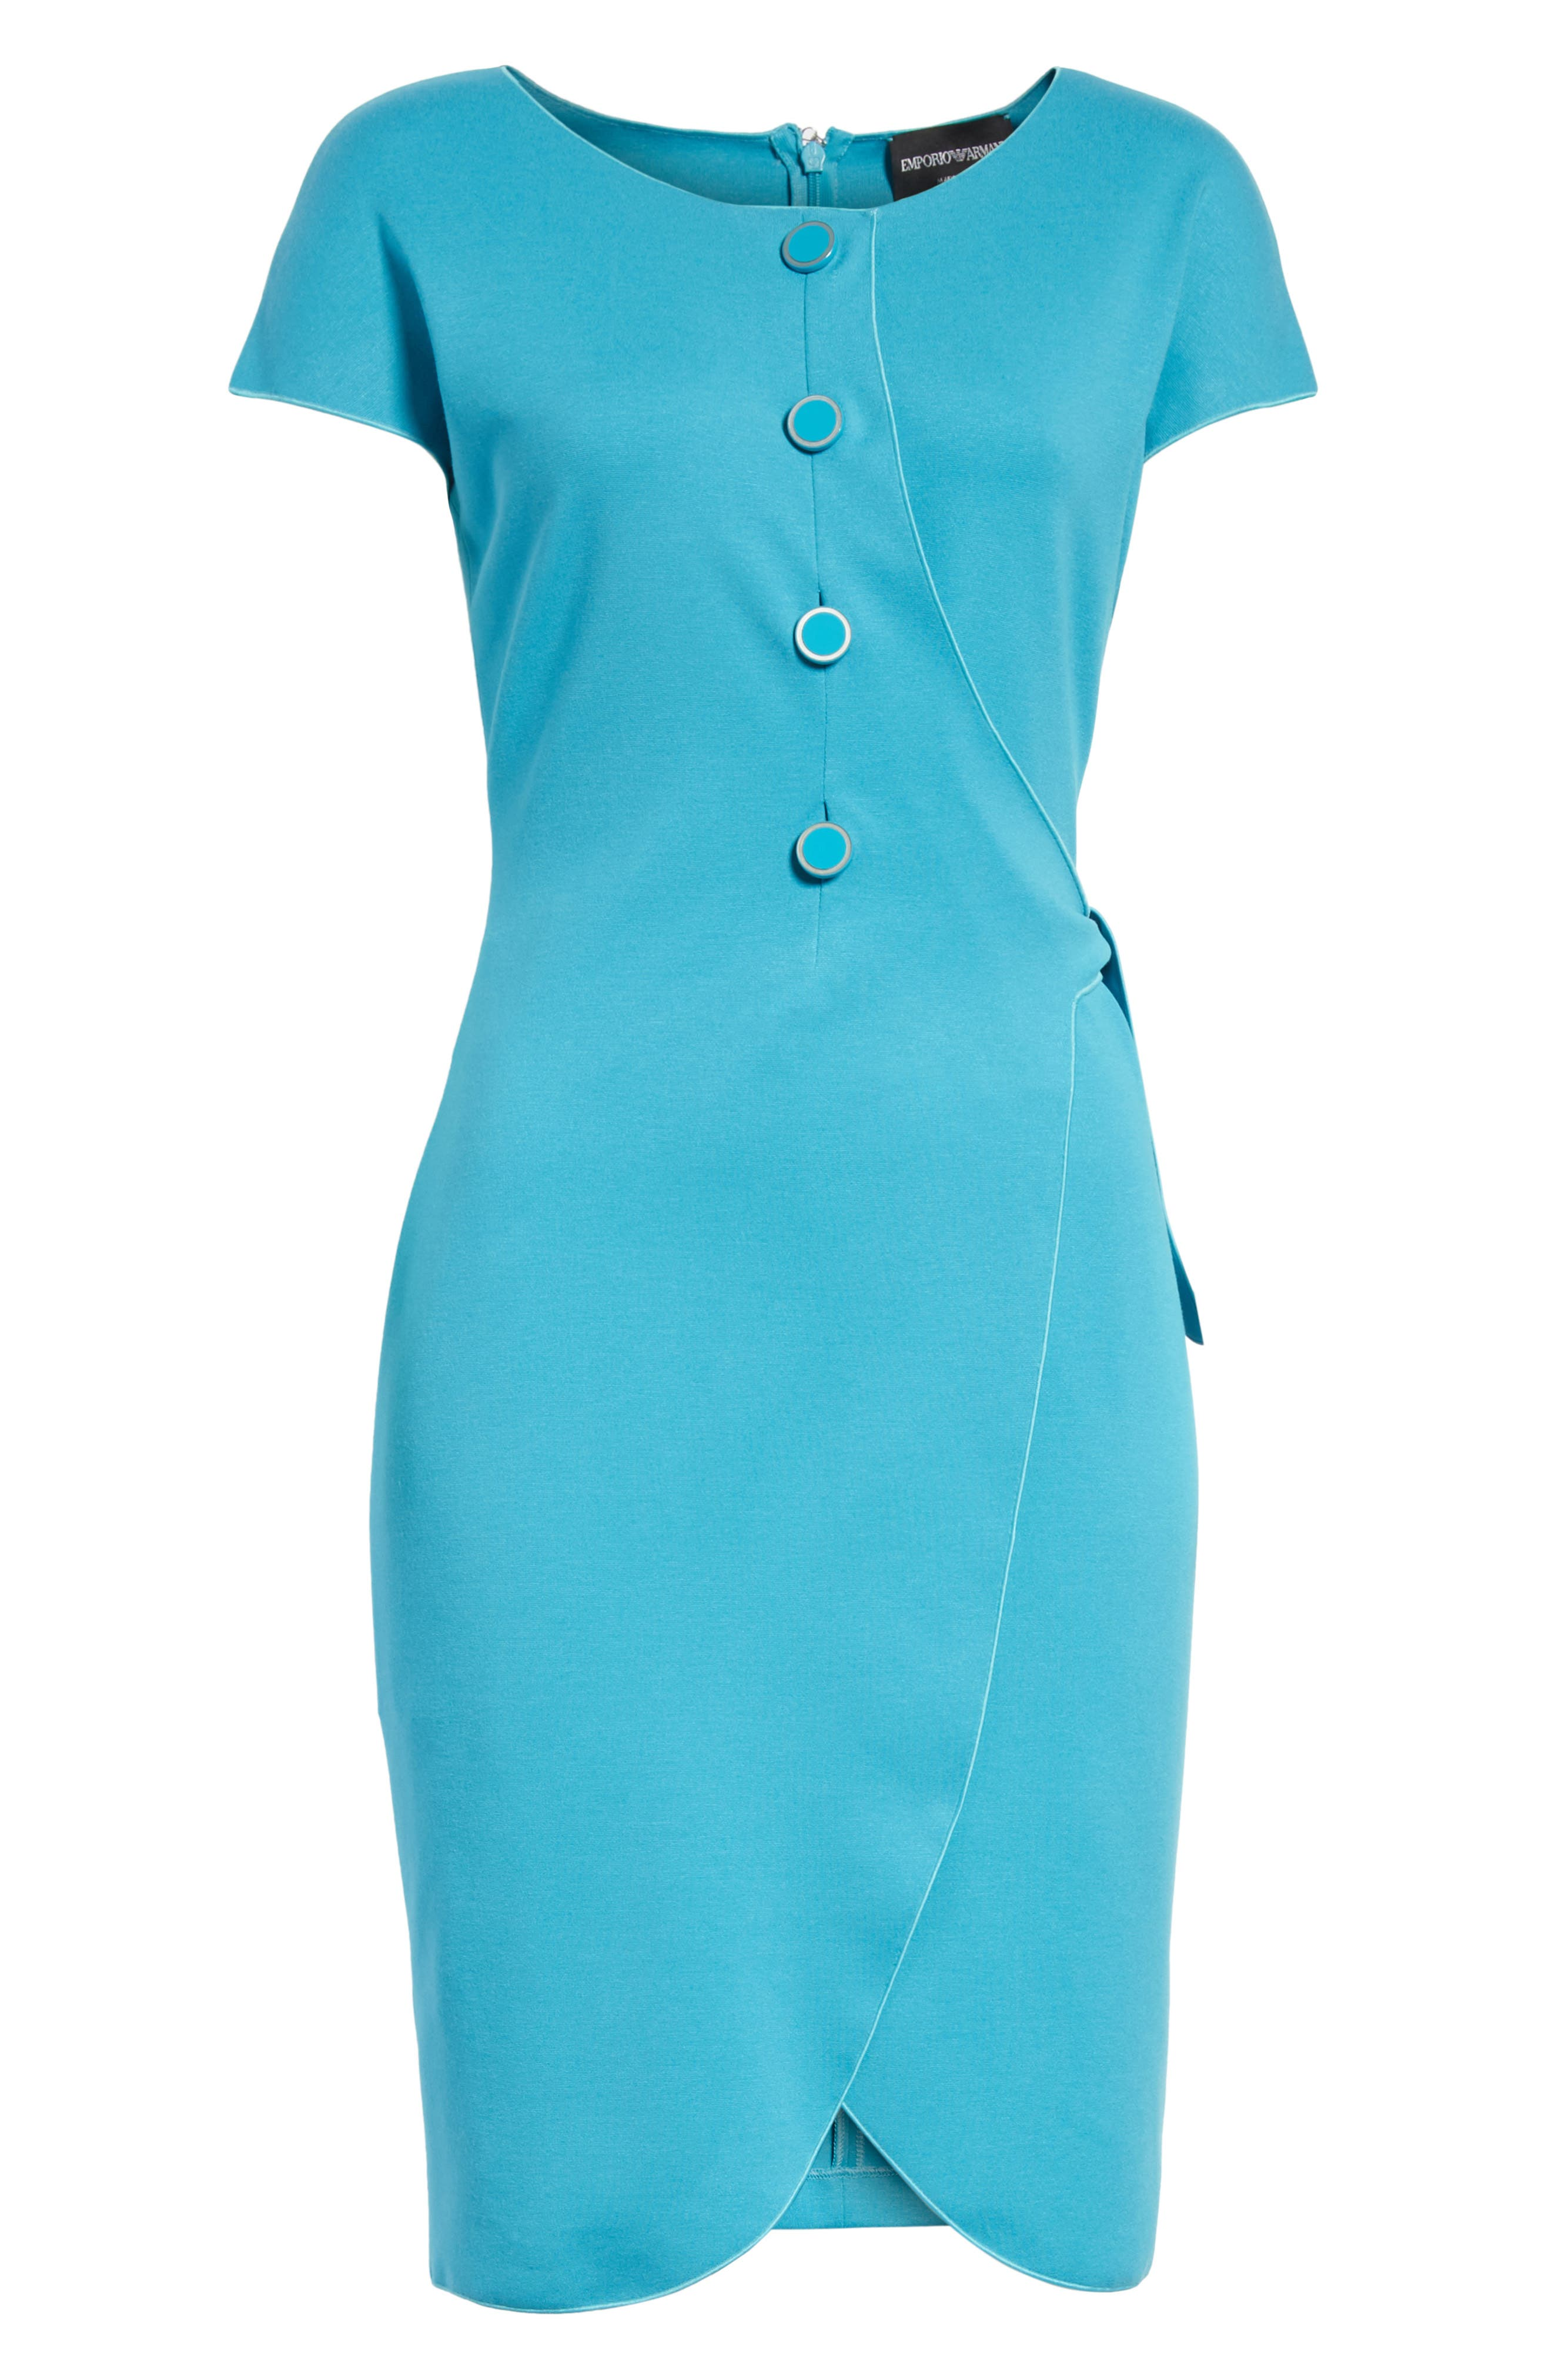 Knotted Wrap Skirt Dress,                             Alternate thumbnail 7, color,                             Solid Turquoise/ Aqua